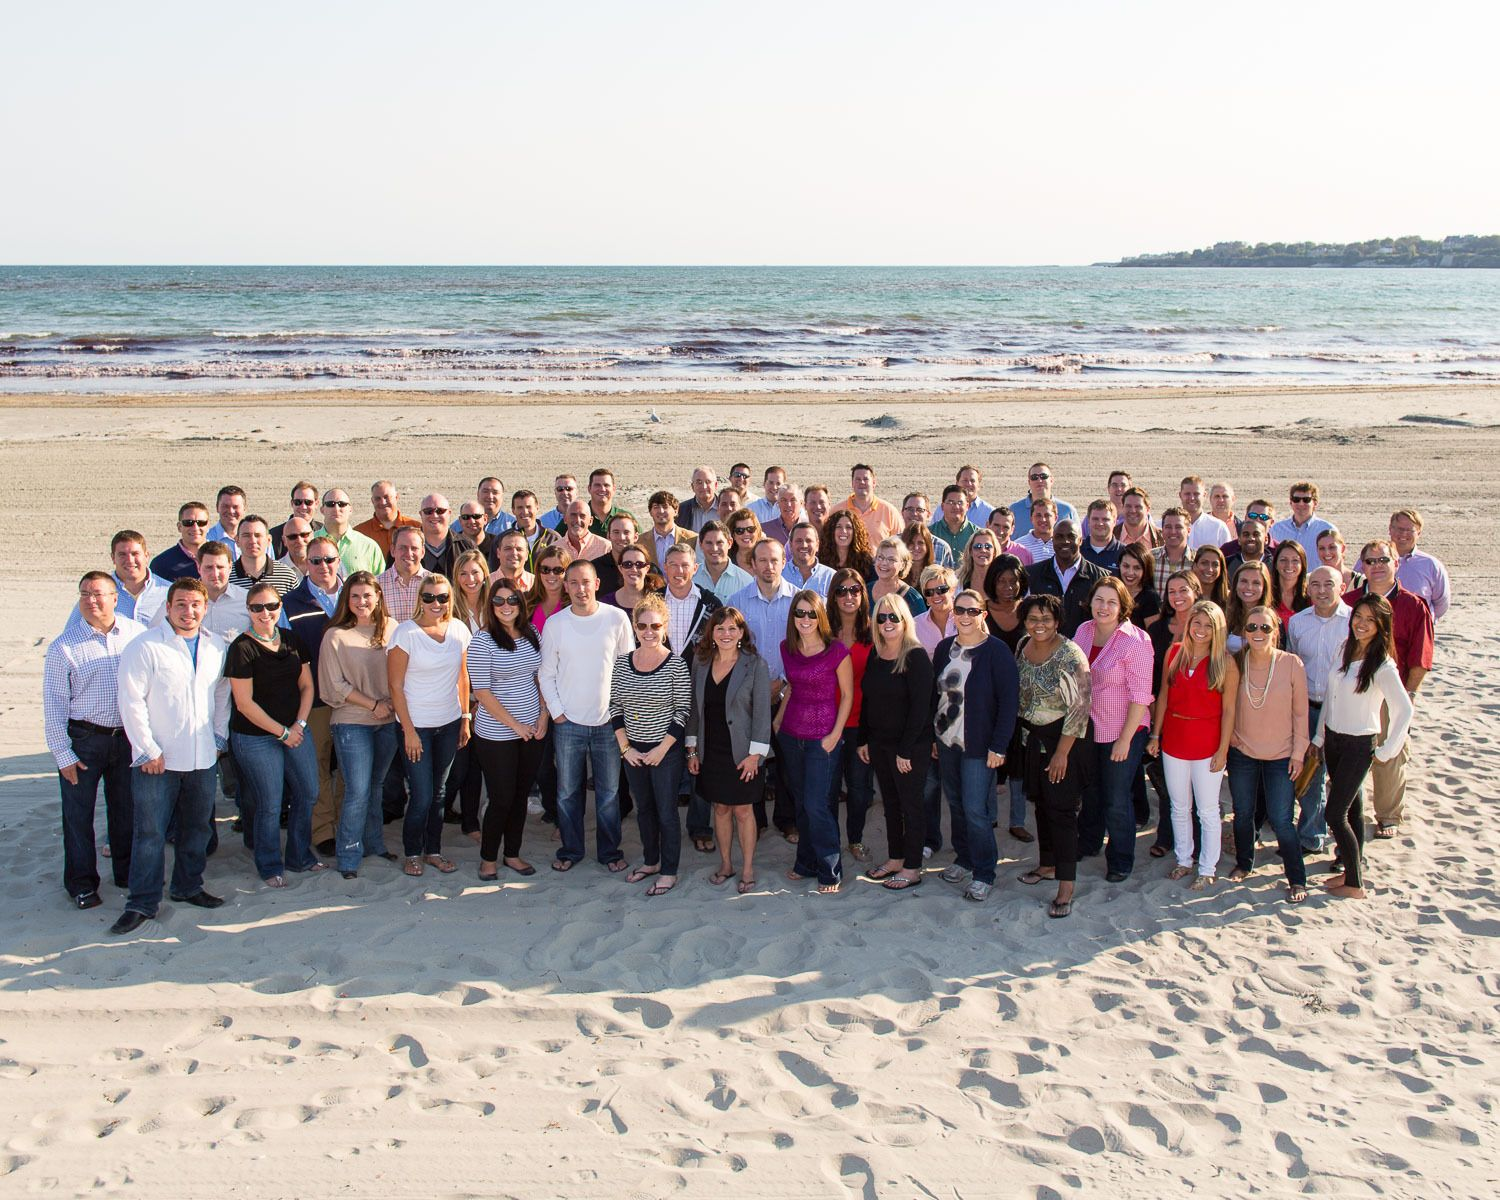 Corporate clients enjoy an afternoon at the beach in Newport.